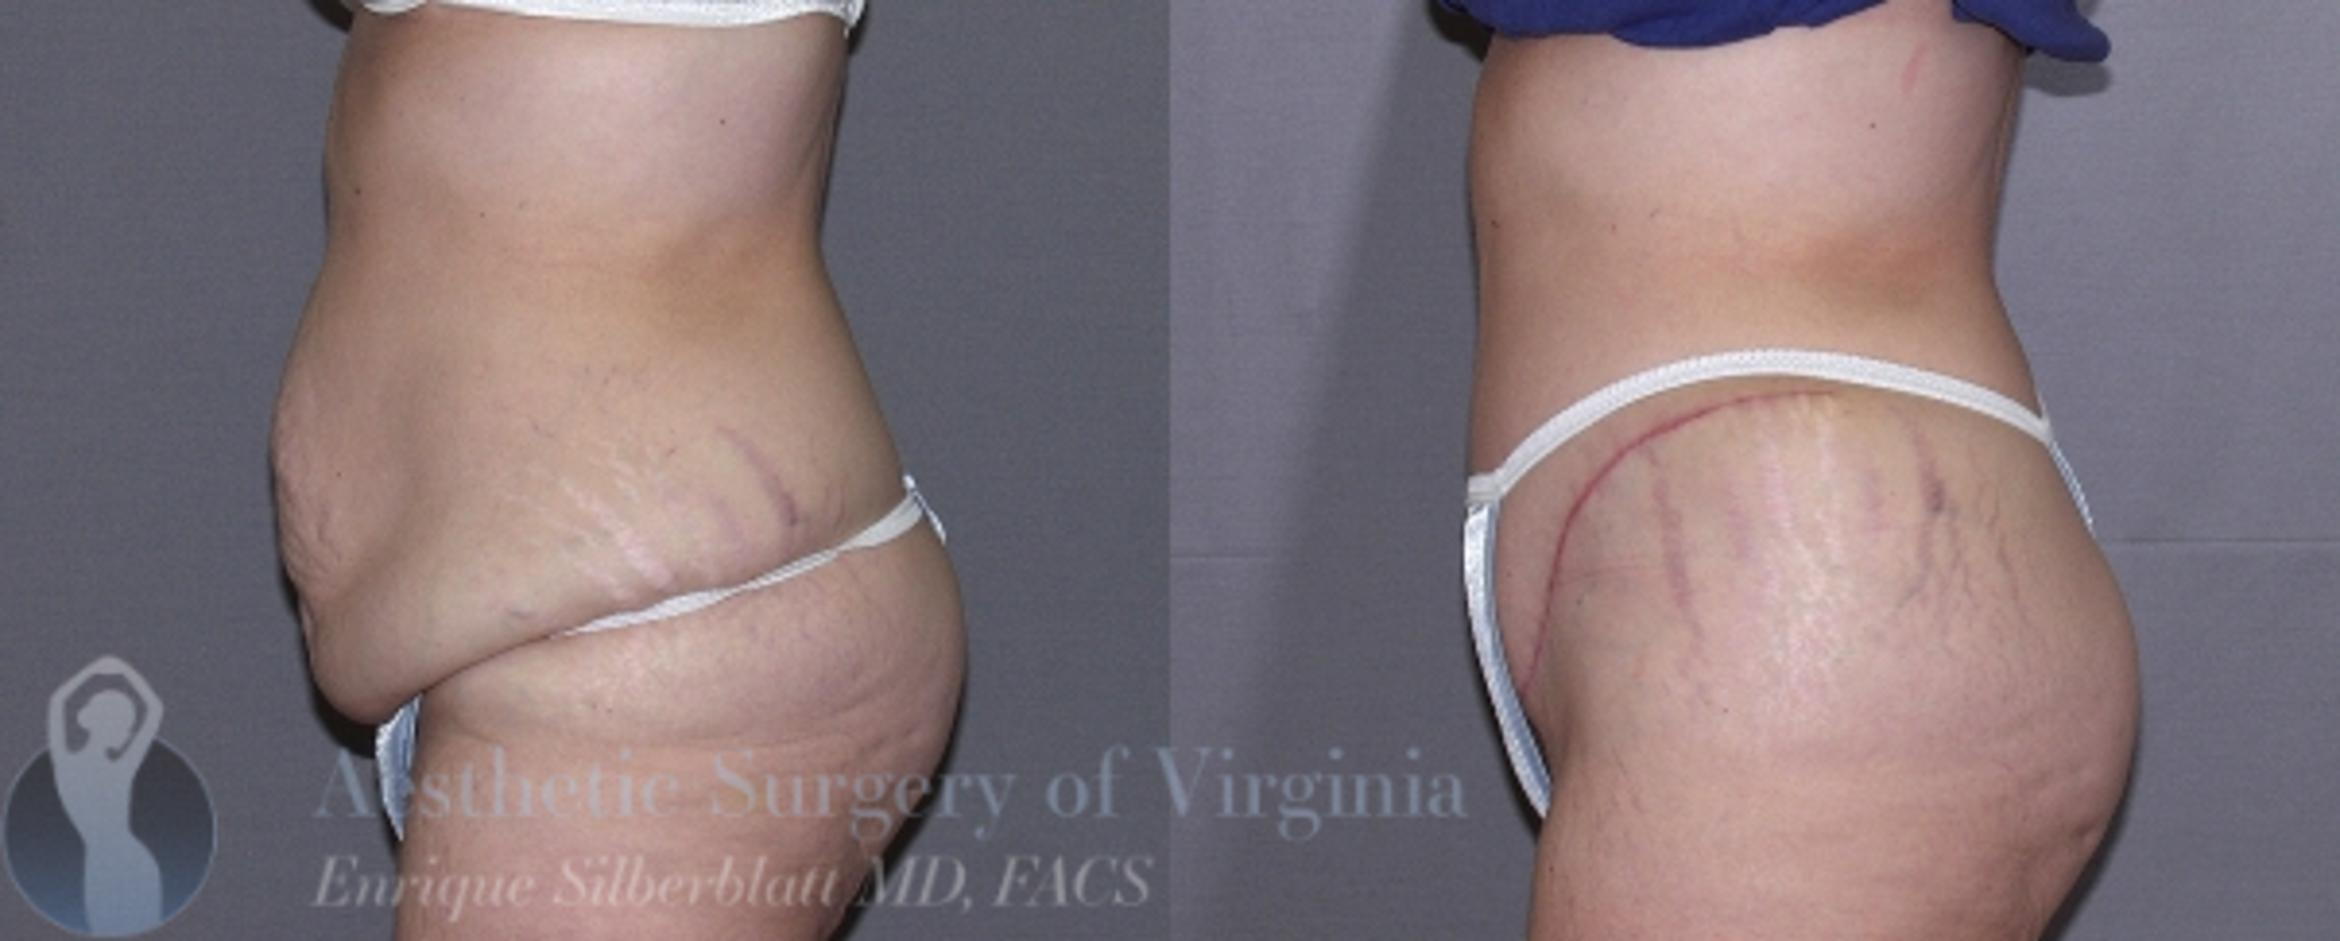 Tummy Tuck Case 25 Before & After View #3 | Roanoke, VA | Aesthetic Surgery of Virginia: Enrique Silberblatt, MD